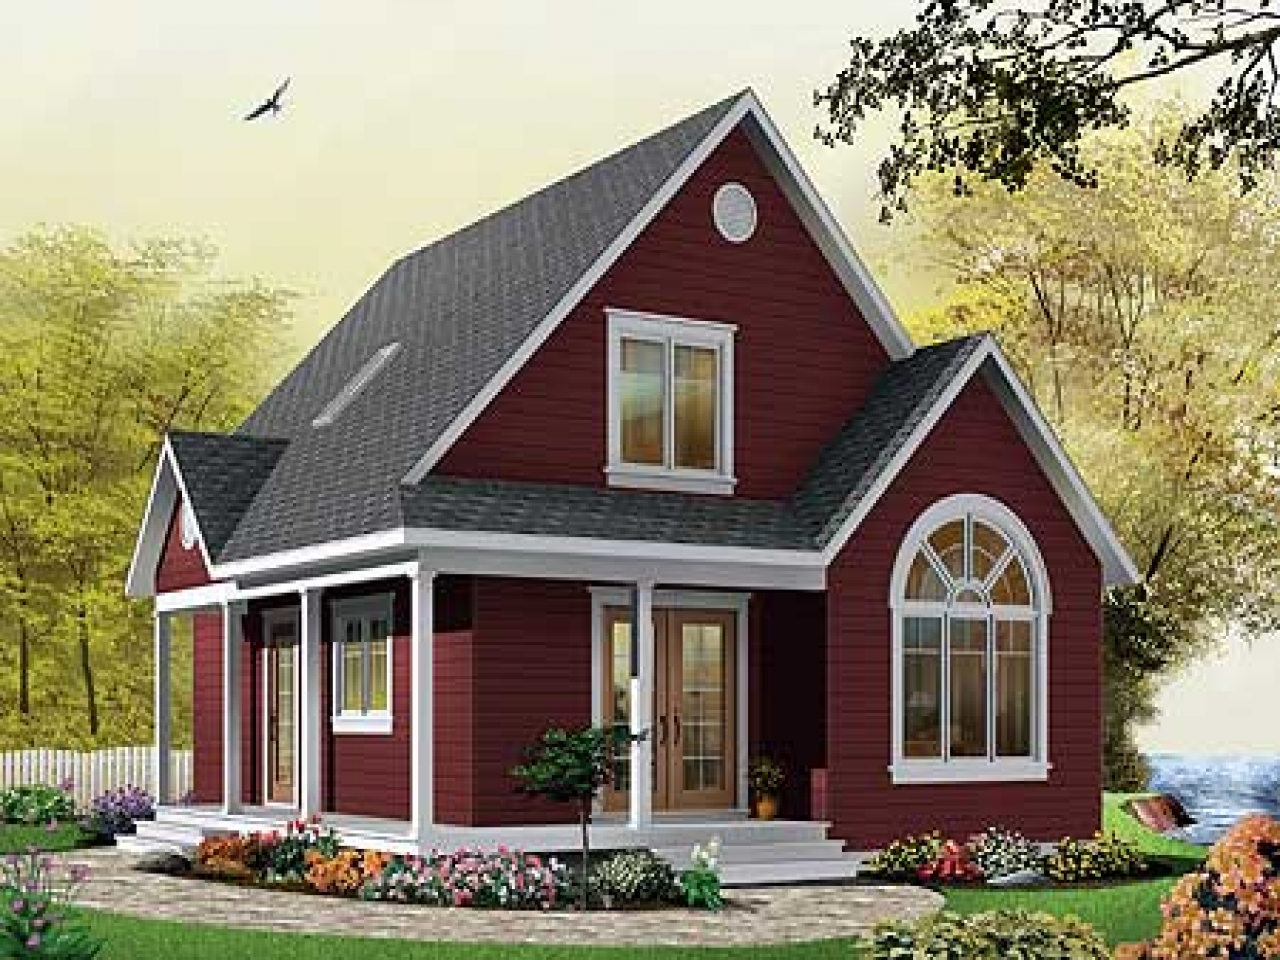 quaint bungalow house plans html with Cc2e9e2720155f08 Small Cottage House Plans With Porches Simple Small House Floor Plans on Tudor Style Bungalow additionally 39bd9790dfc4e462 Inside Tiny Houses Living Tiny House Australia as well Aa457b22044b8dbb 2 Bedroom Cabin Floor Plans Small 2 Bedroom Cottage House Plans additionally The Best Exercises For Your besides Japanese Bungalow.